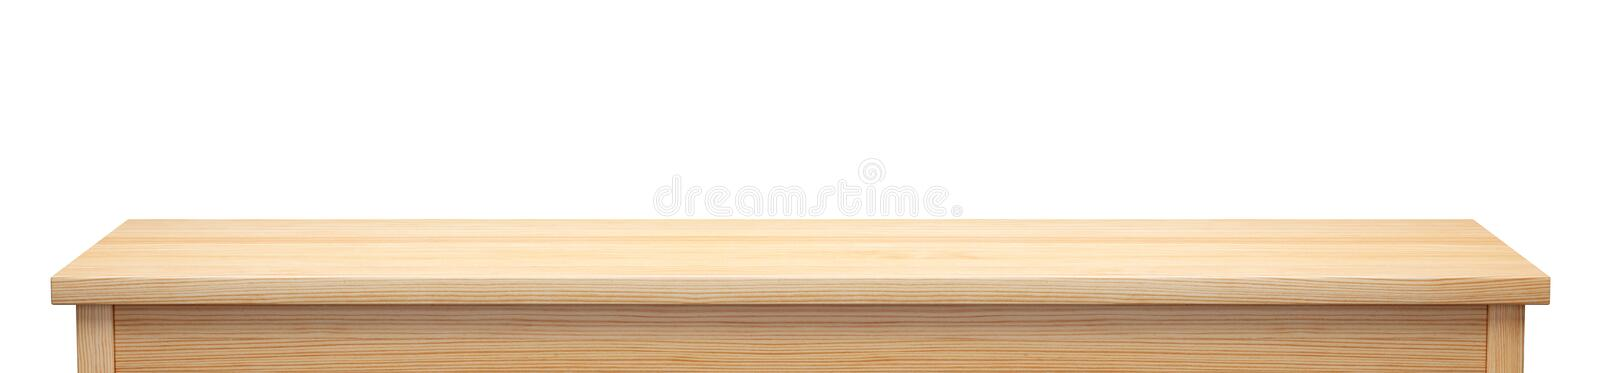 Long pine wood tabletop isolated on white background, 3d rendering. Long pine wood tabletop isolated on white background, useful for display or product montage stock illustration